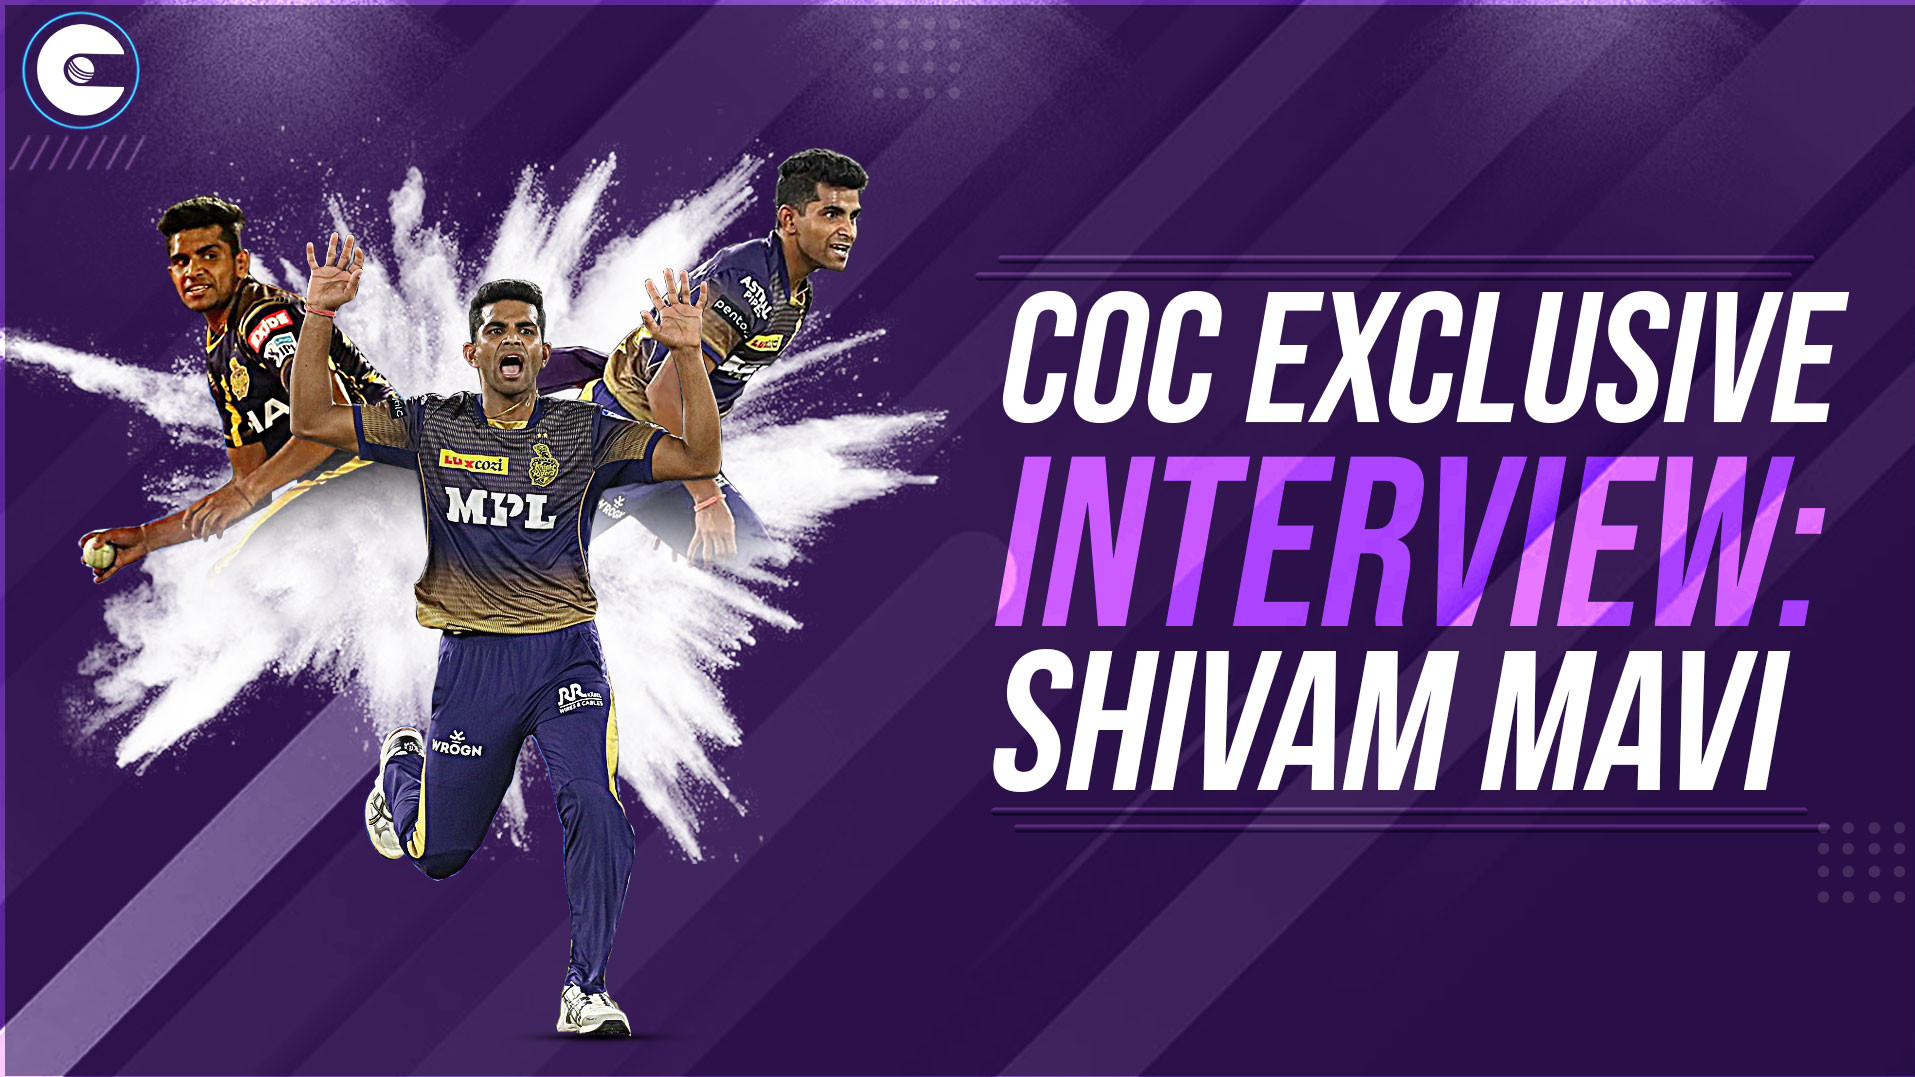 Exclusive: Circle of Cricket interview with Shivam Mavi